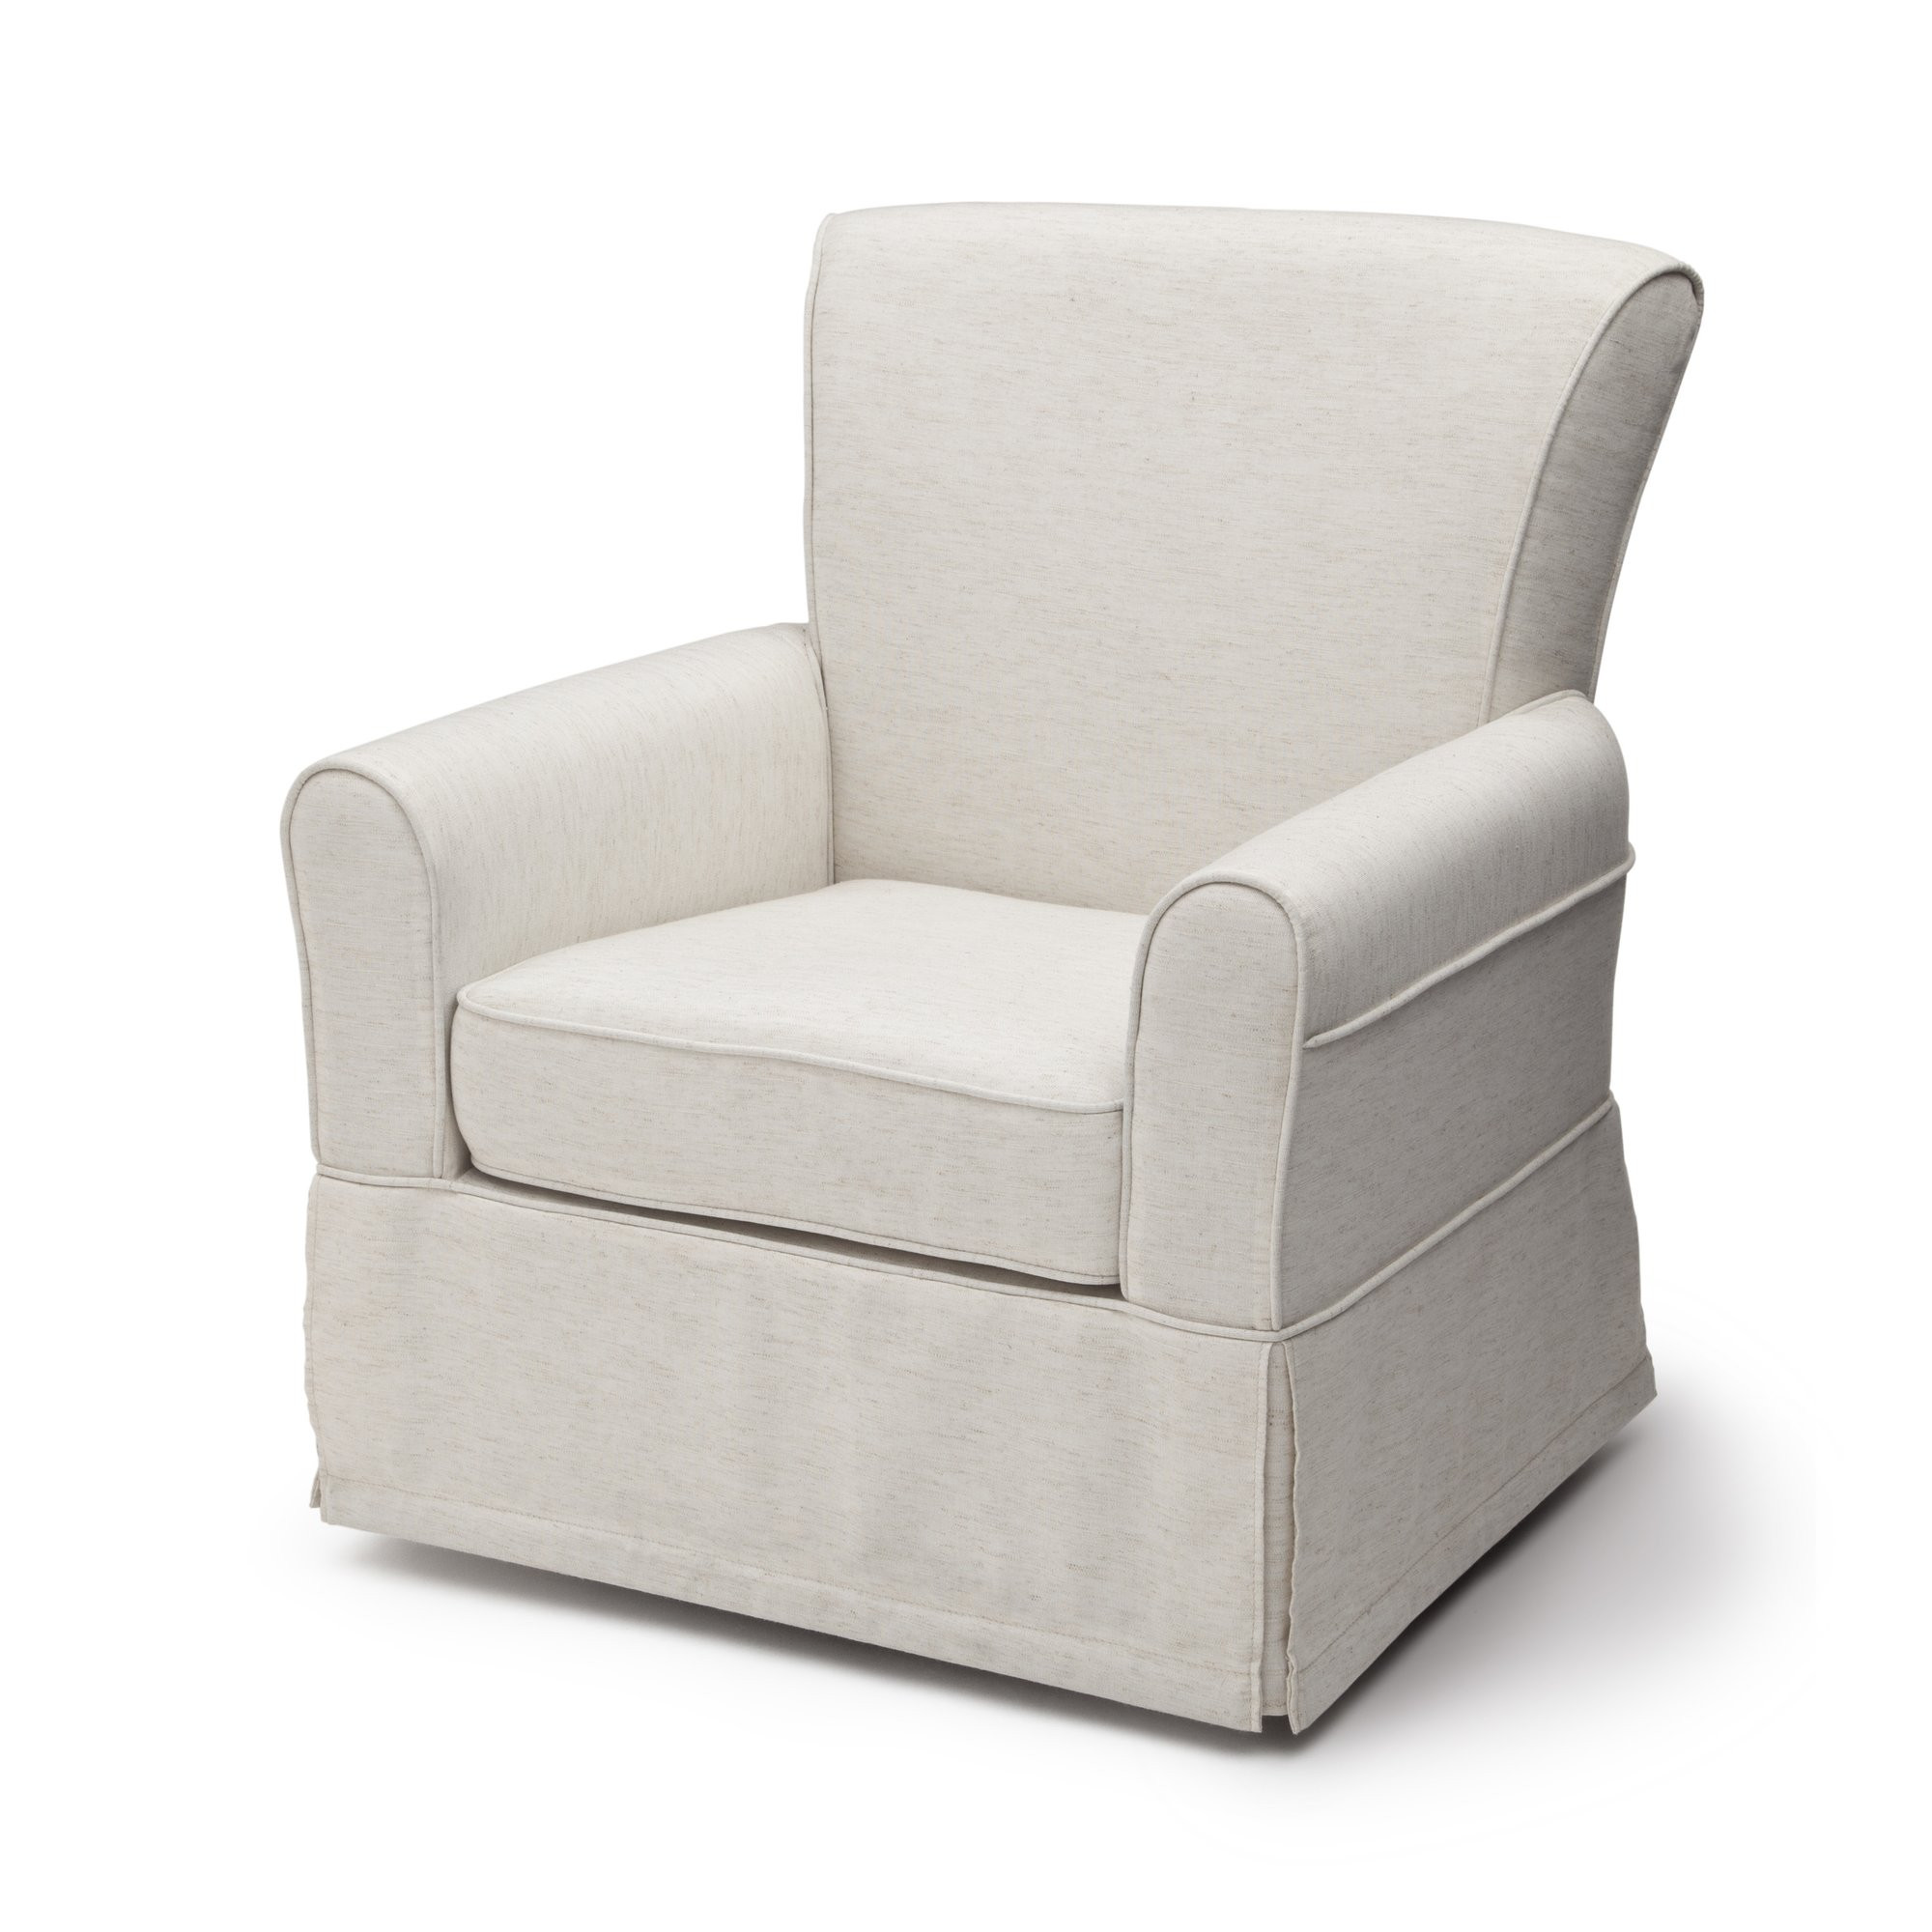 Best ideas about Swivel Glider Chair . Save or Pin Delta Children Epic Swivel Glider & Reviews Now.